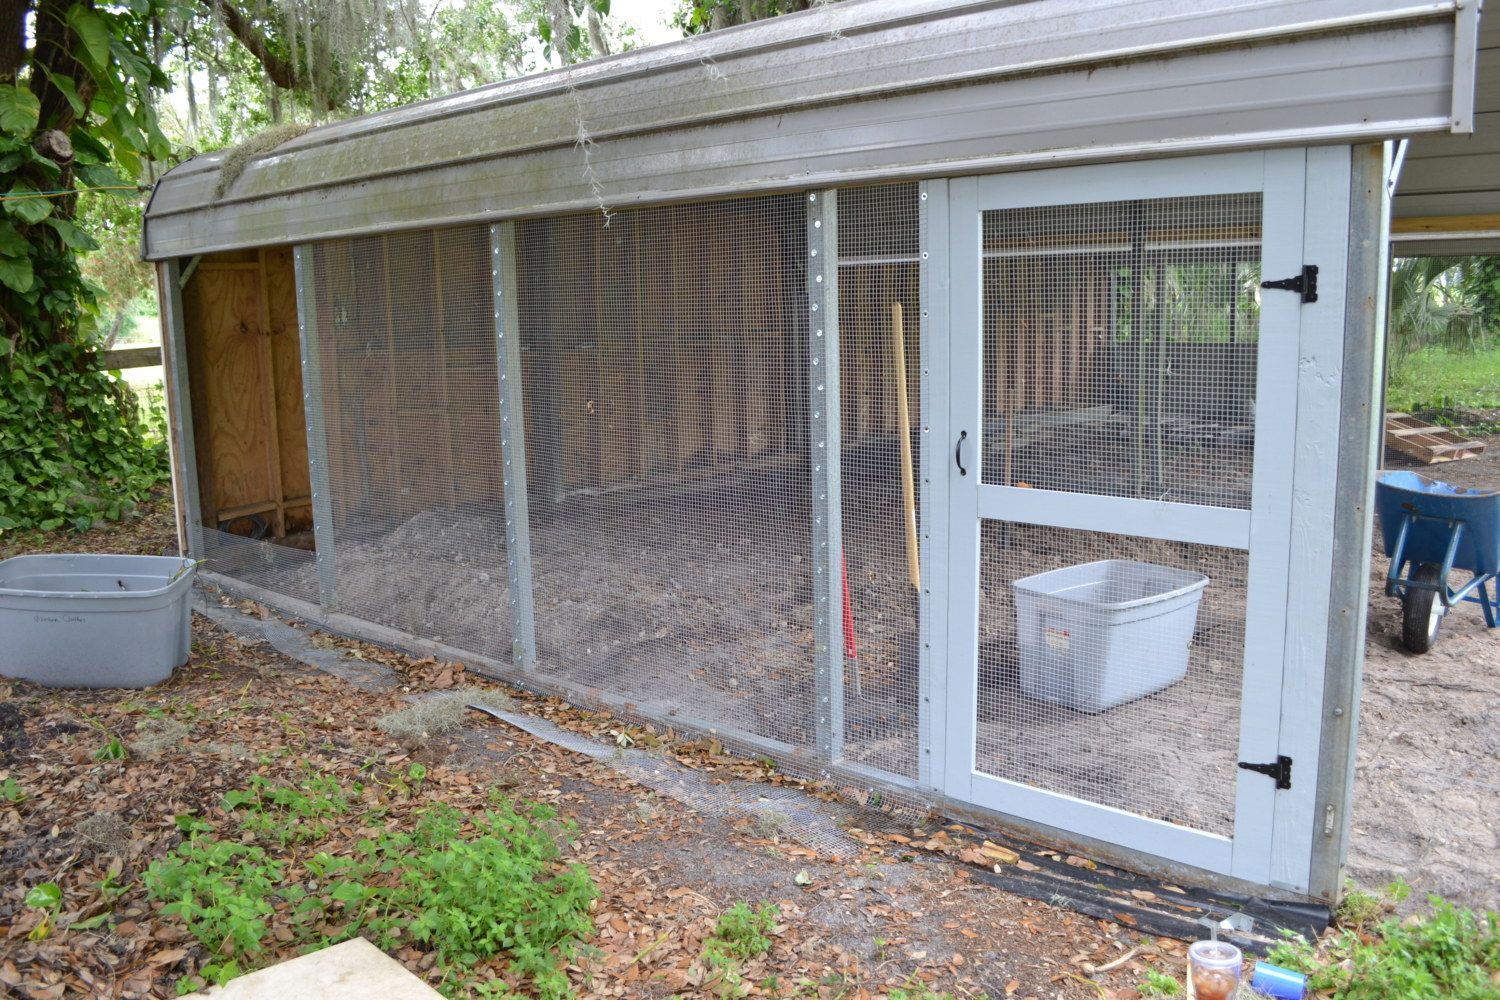 Carport To Coop Run Conversion Backyard Chickens